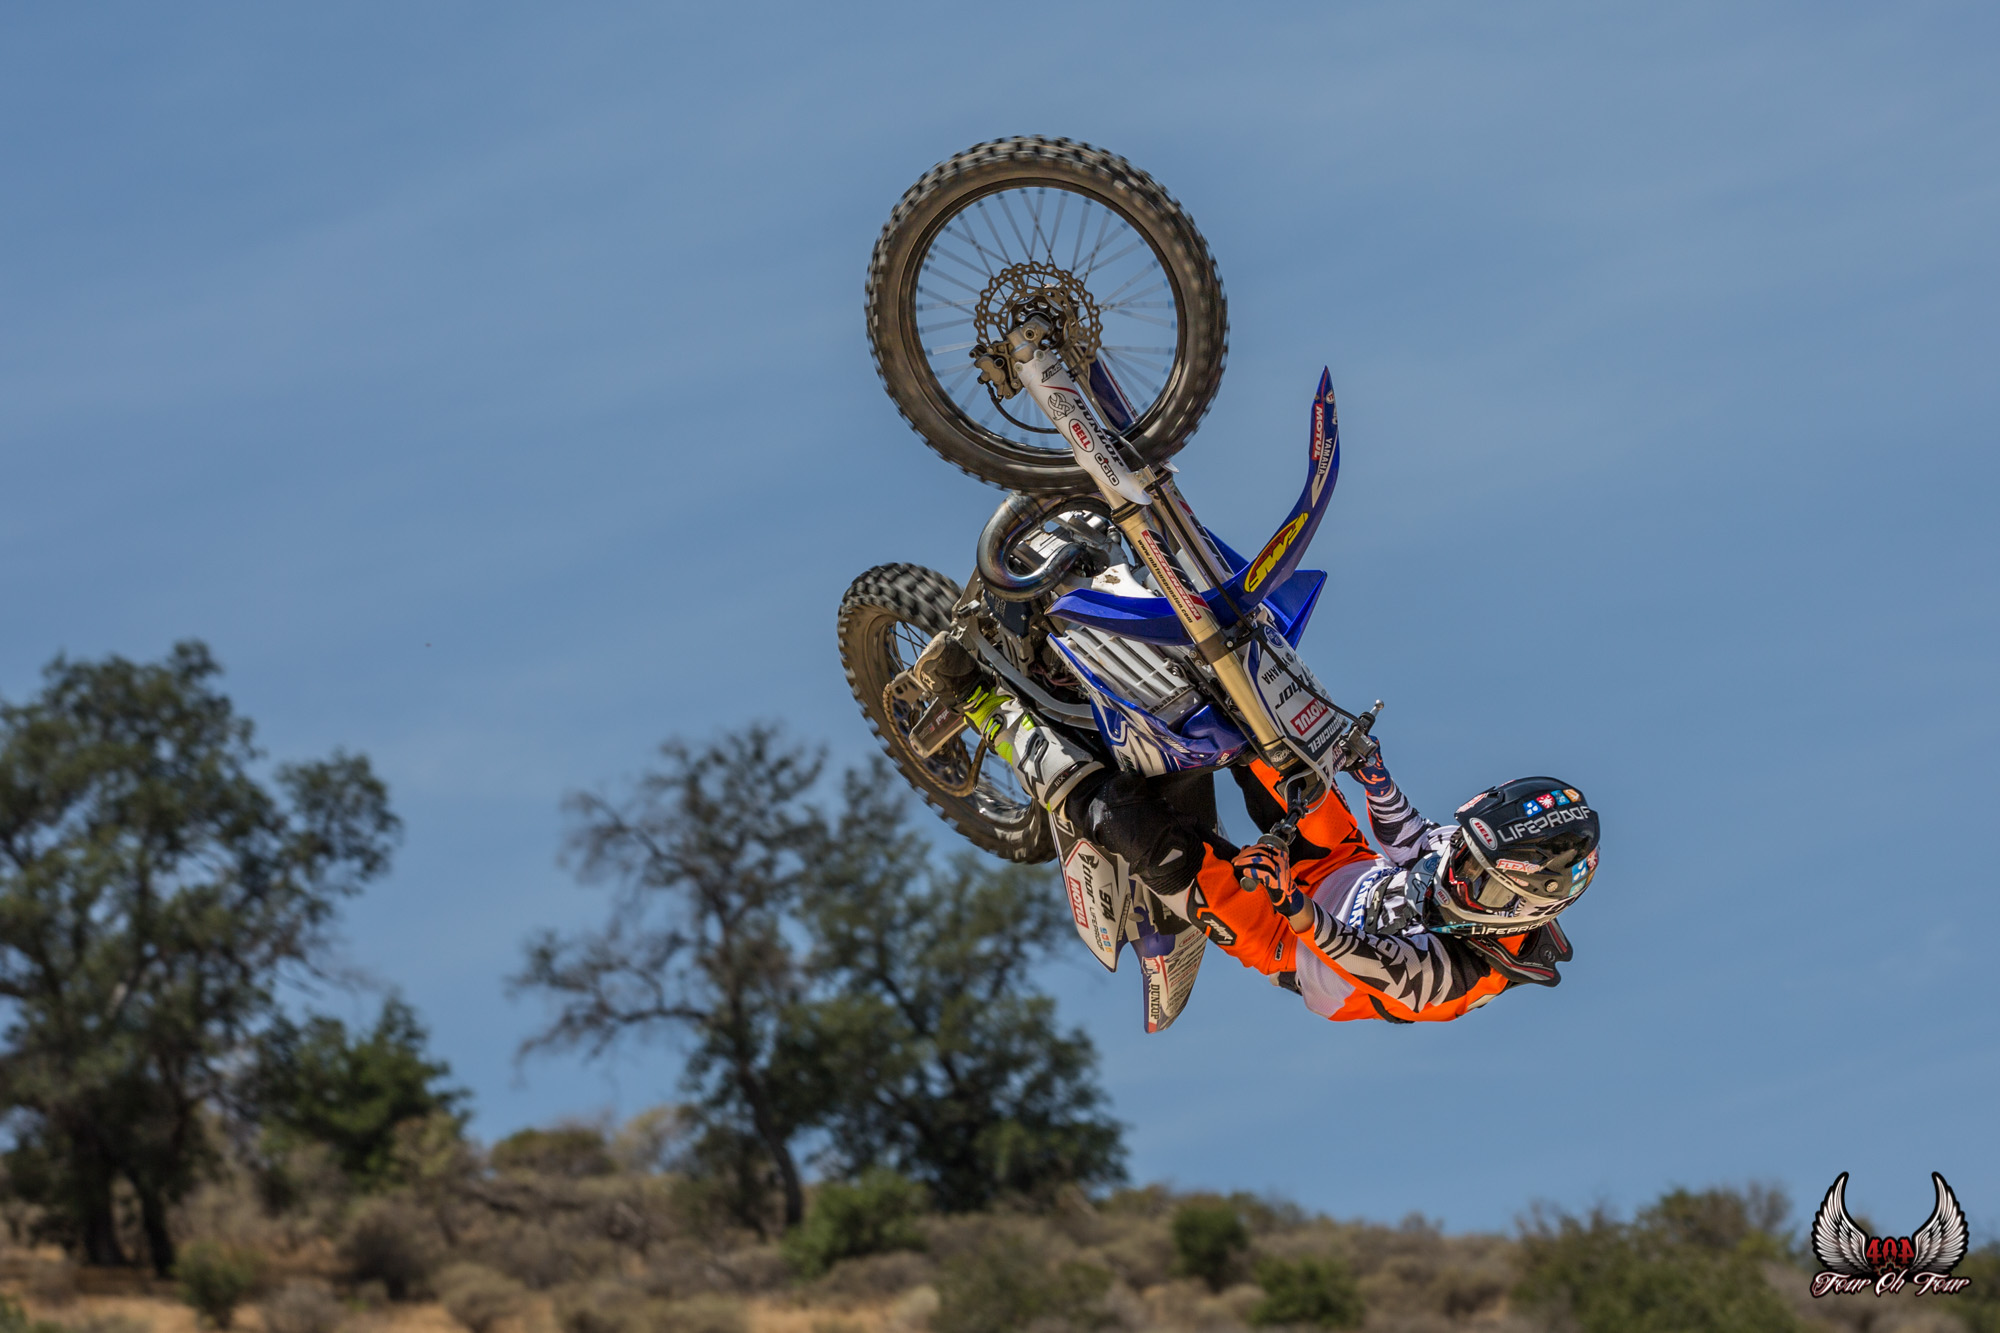 Jarryd Mcneil whips his bike while filming for RIDE UNITED the movie. Photo by Amanda West - FourOhFour Films.